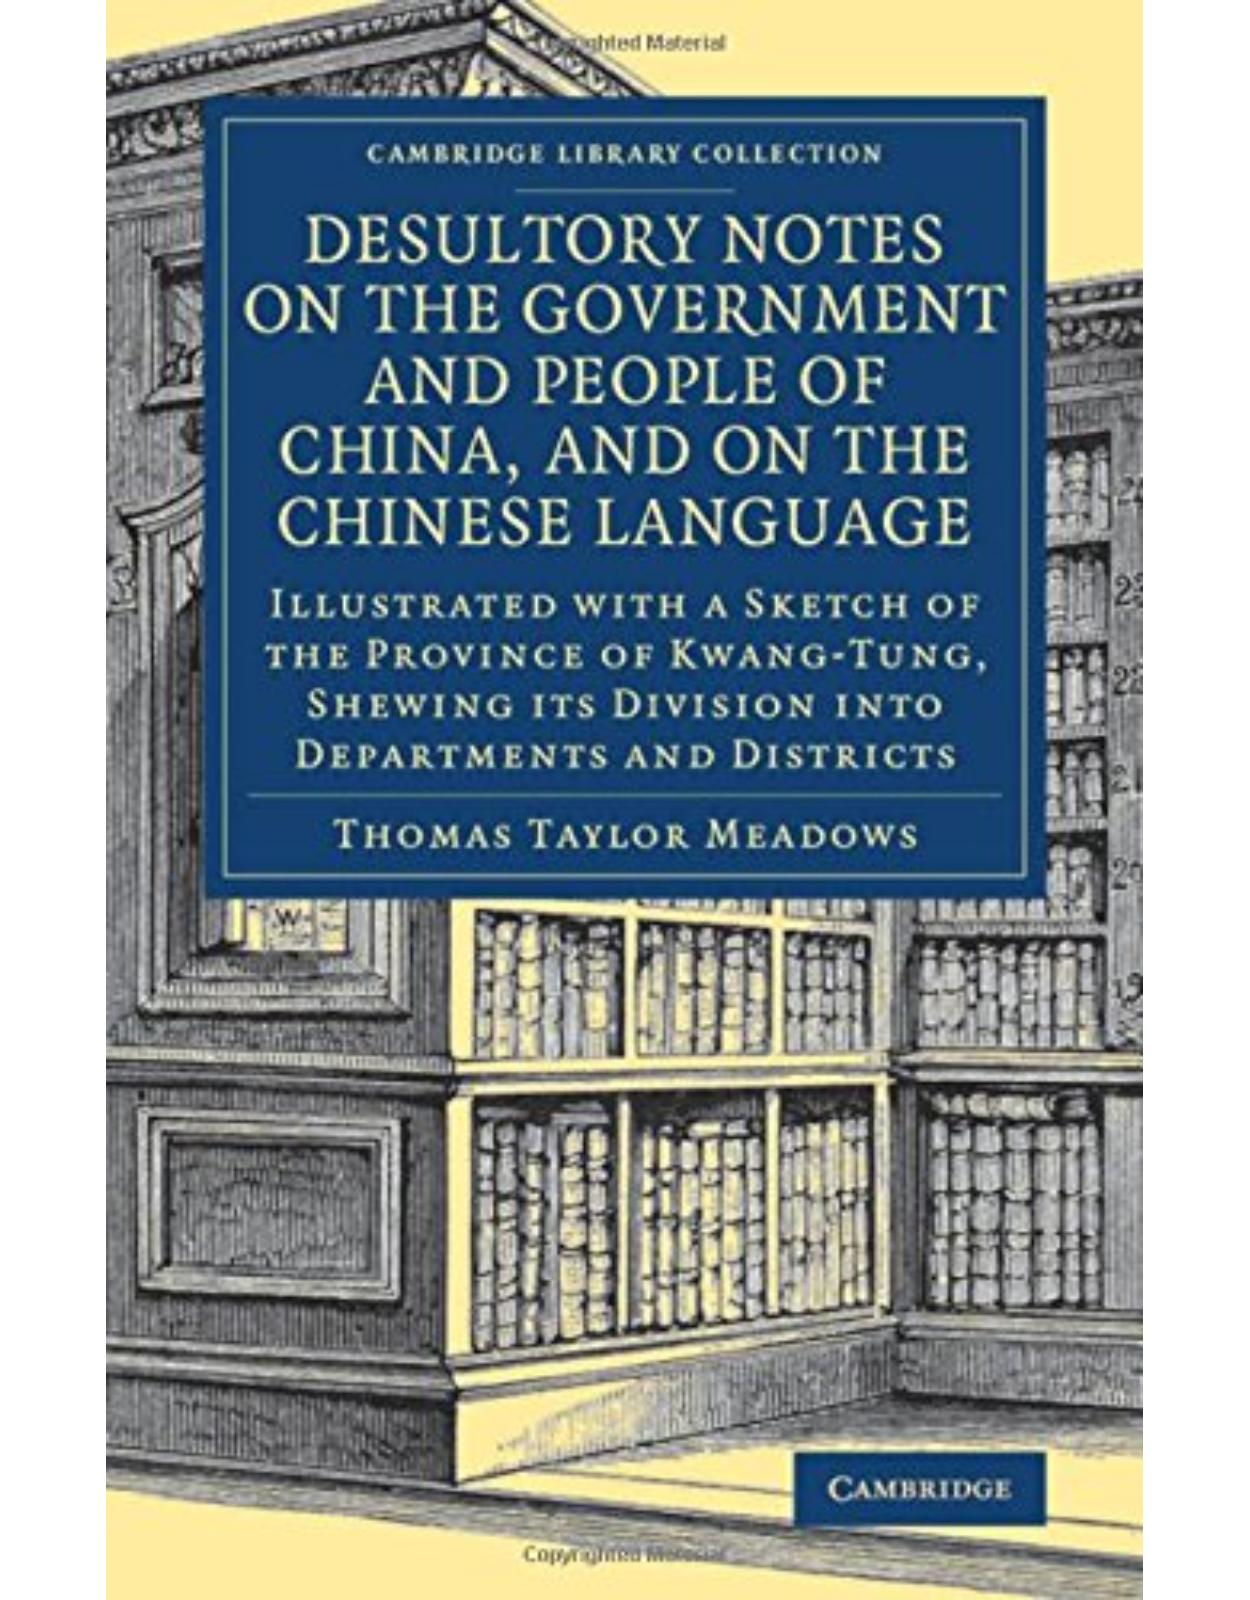 Desultory Notes on the Government and People of China, and on the Chinese Language: Illustrated with a Sketch of the Province of Kwang-Tung, Shewing ... - East and South-East Asian History)